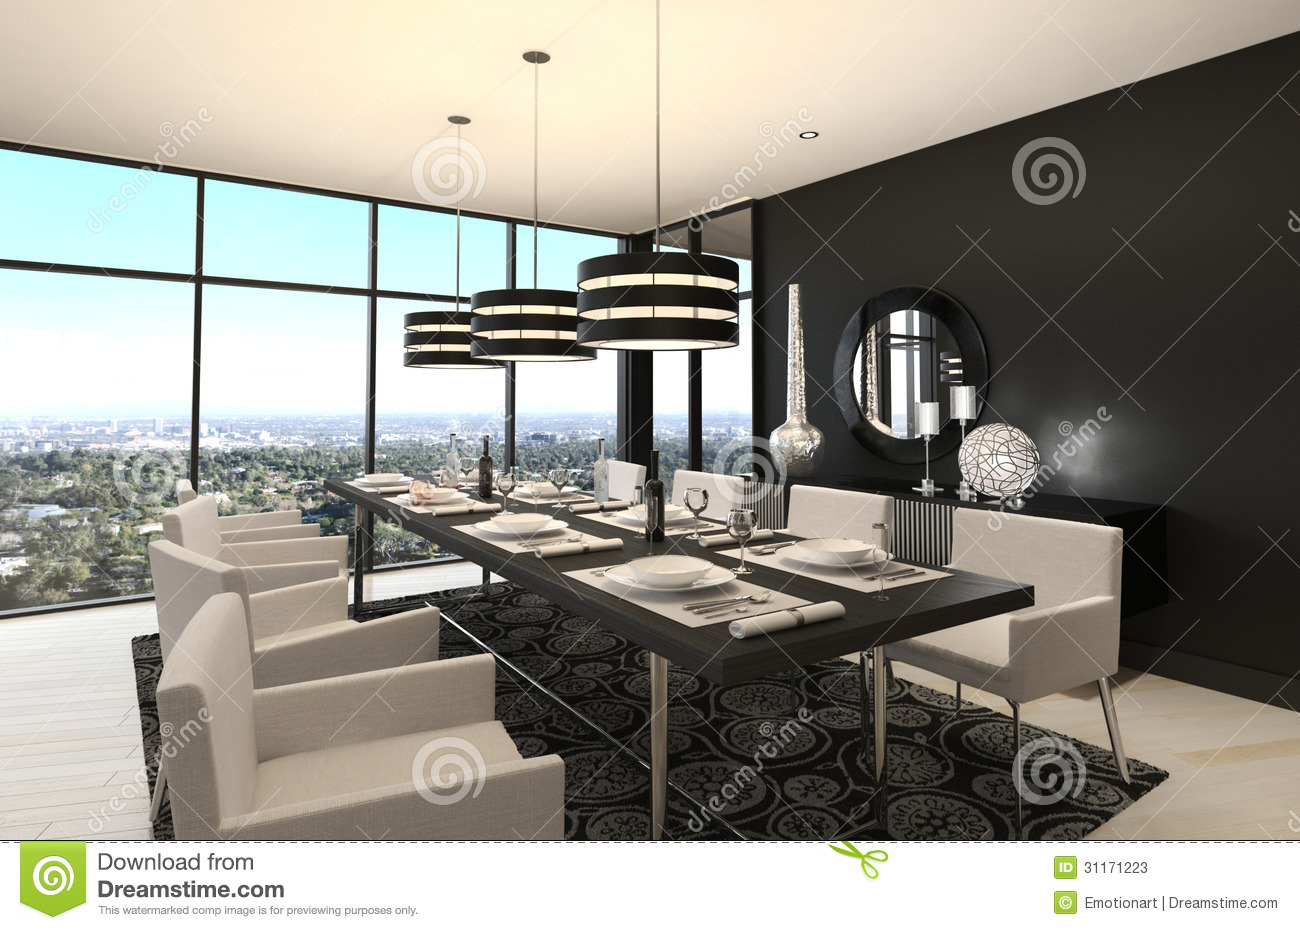 Modern design dining room living room interior stock for Modern dining room interior design